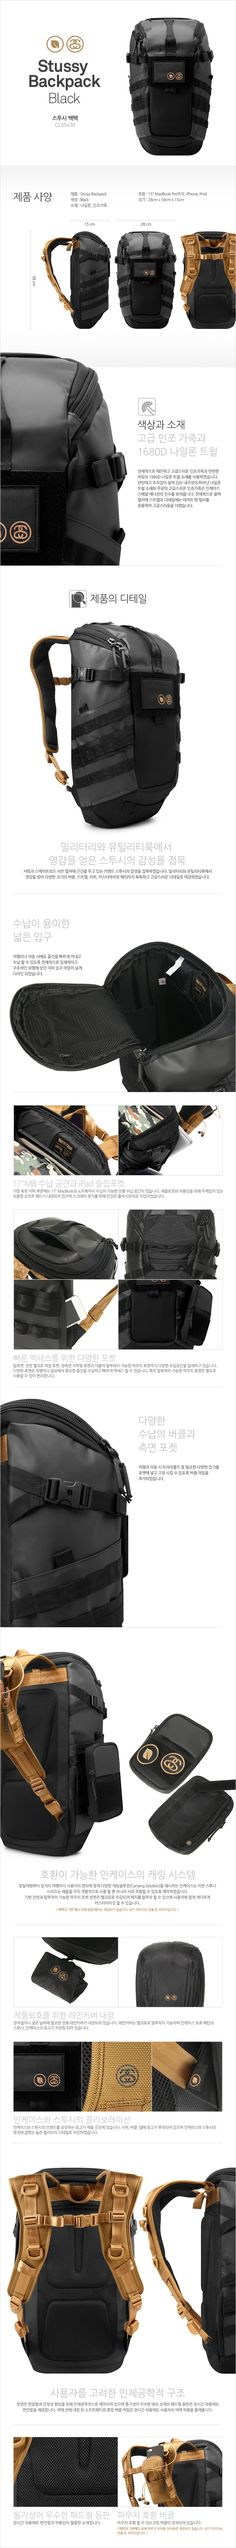 Stussy Backpack - Incase Korea